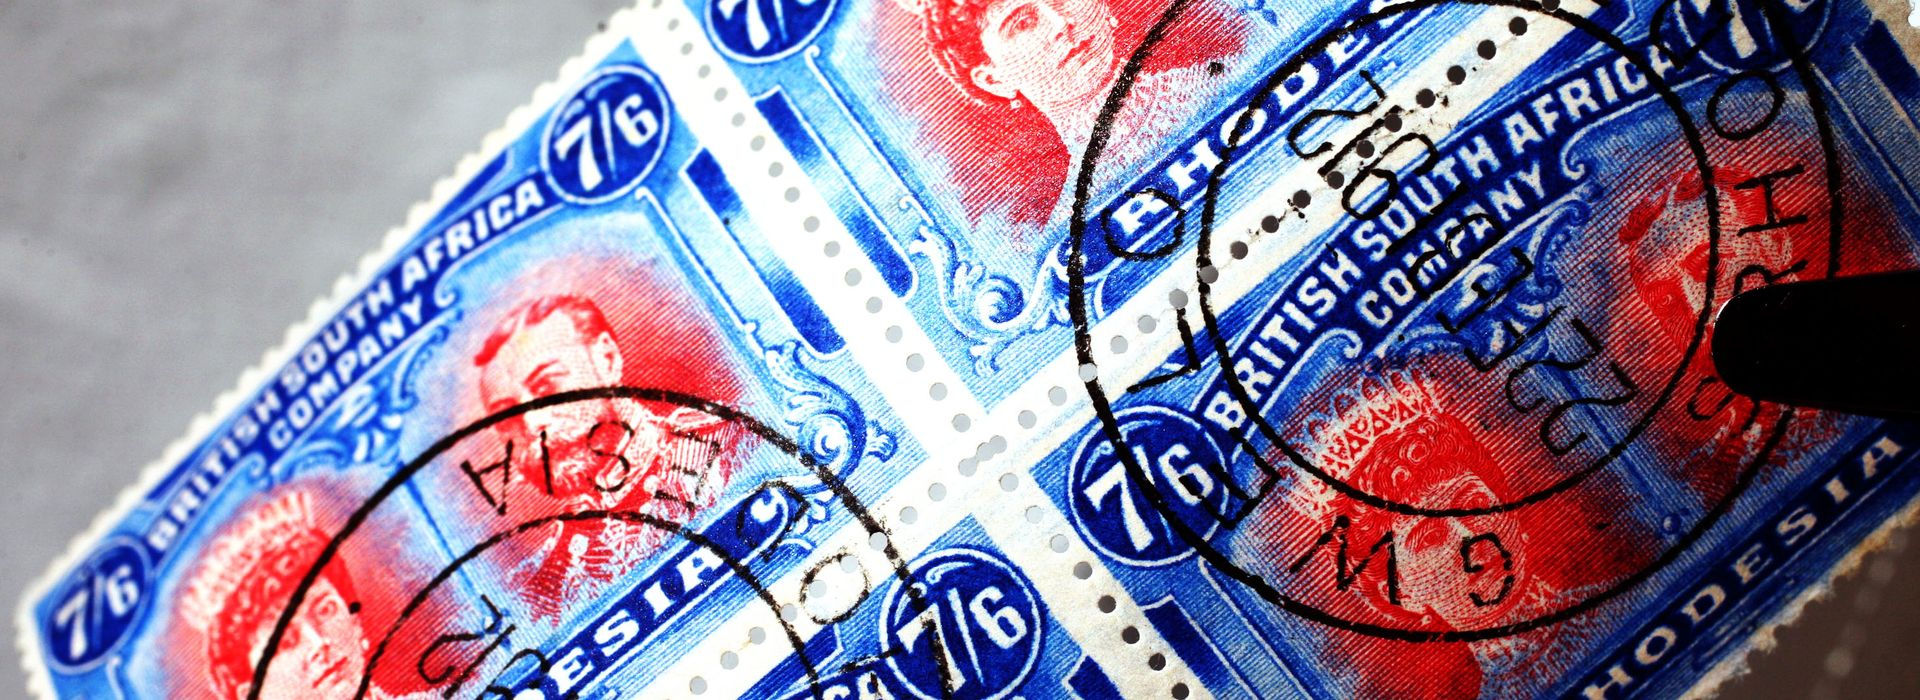 SG Stamps high res 04